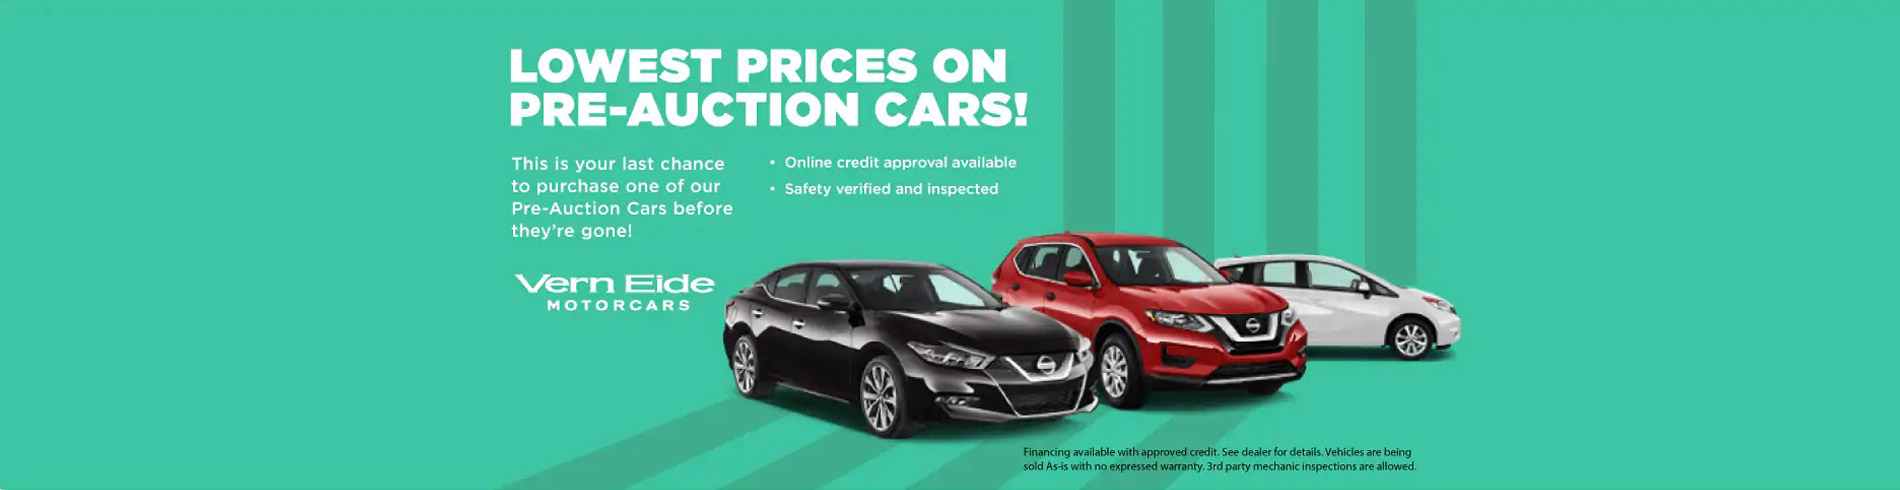 Lowest Prices on Pre-Auction Cars